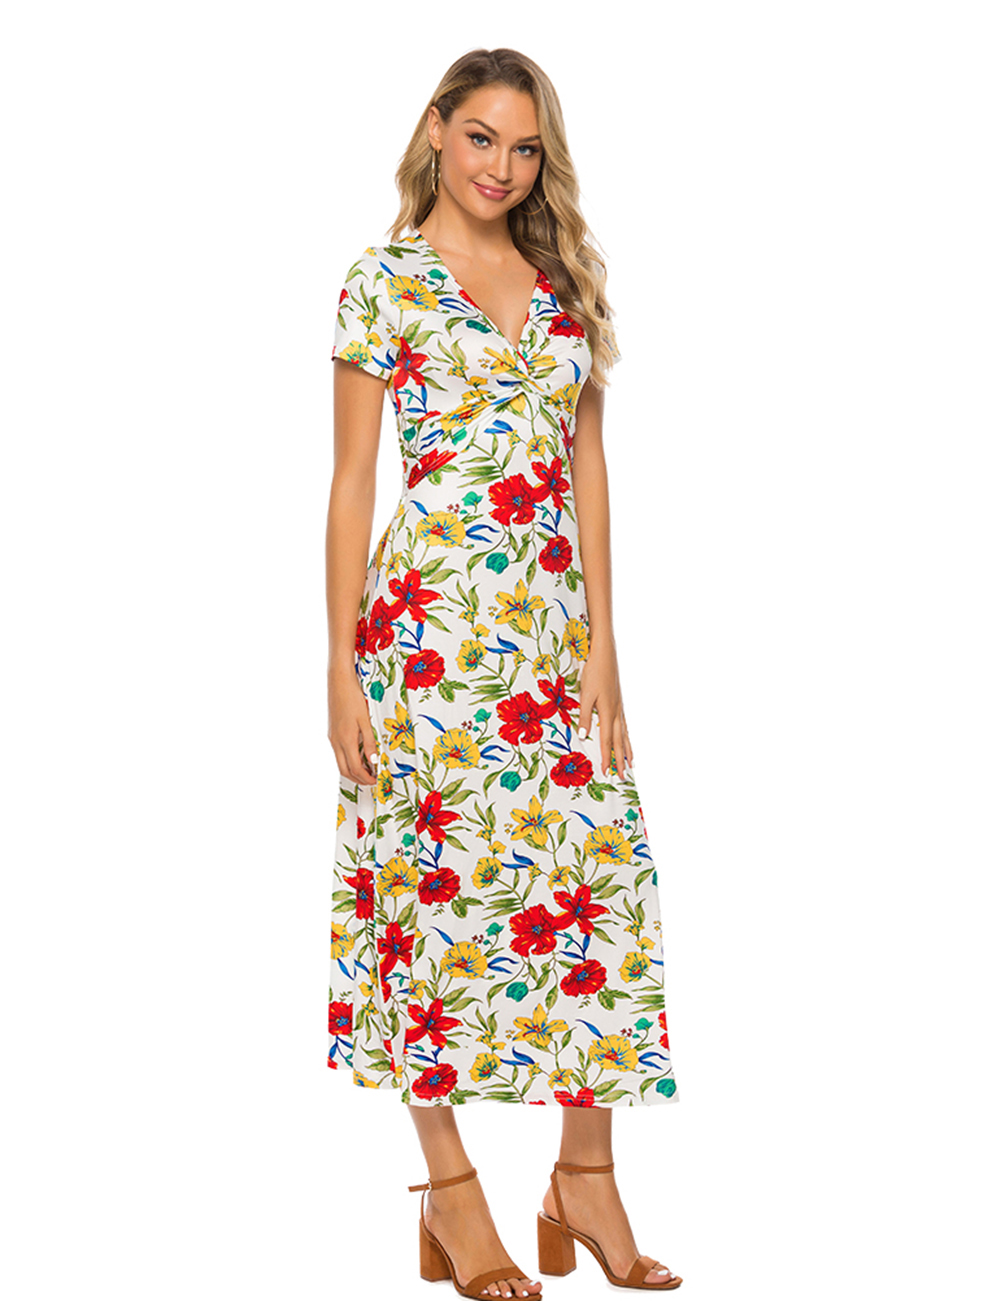 //cdn.affectcloud.com/hexinfashion/upload/imgs/Dress/Maxi_Dress/VZ190842-WH1/VZ190842-WH1-201911055dc10e46a6857.jpg